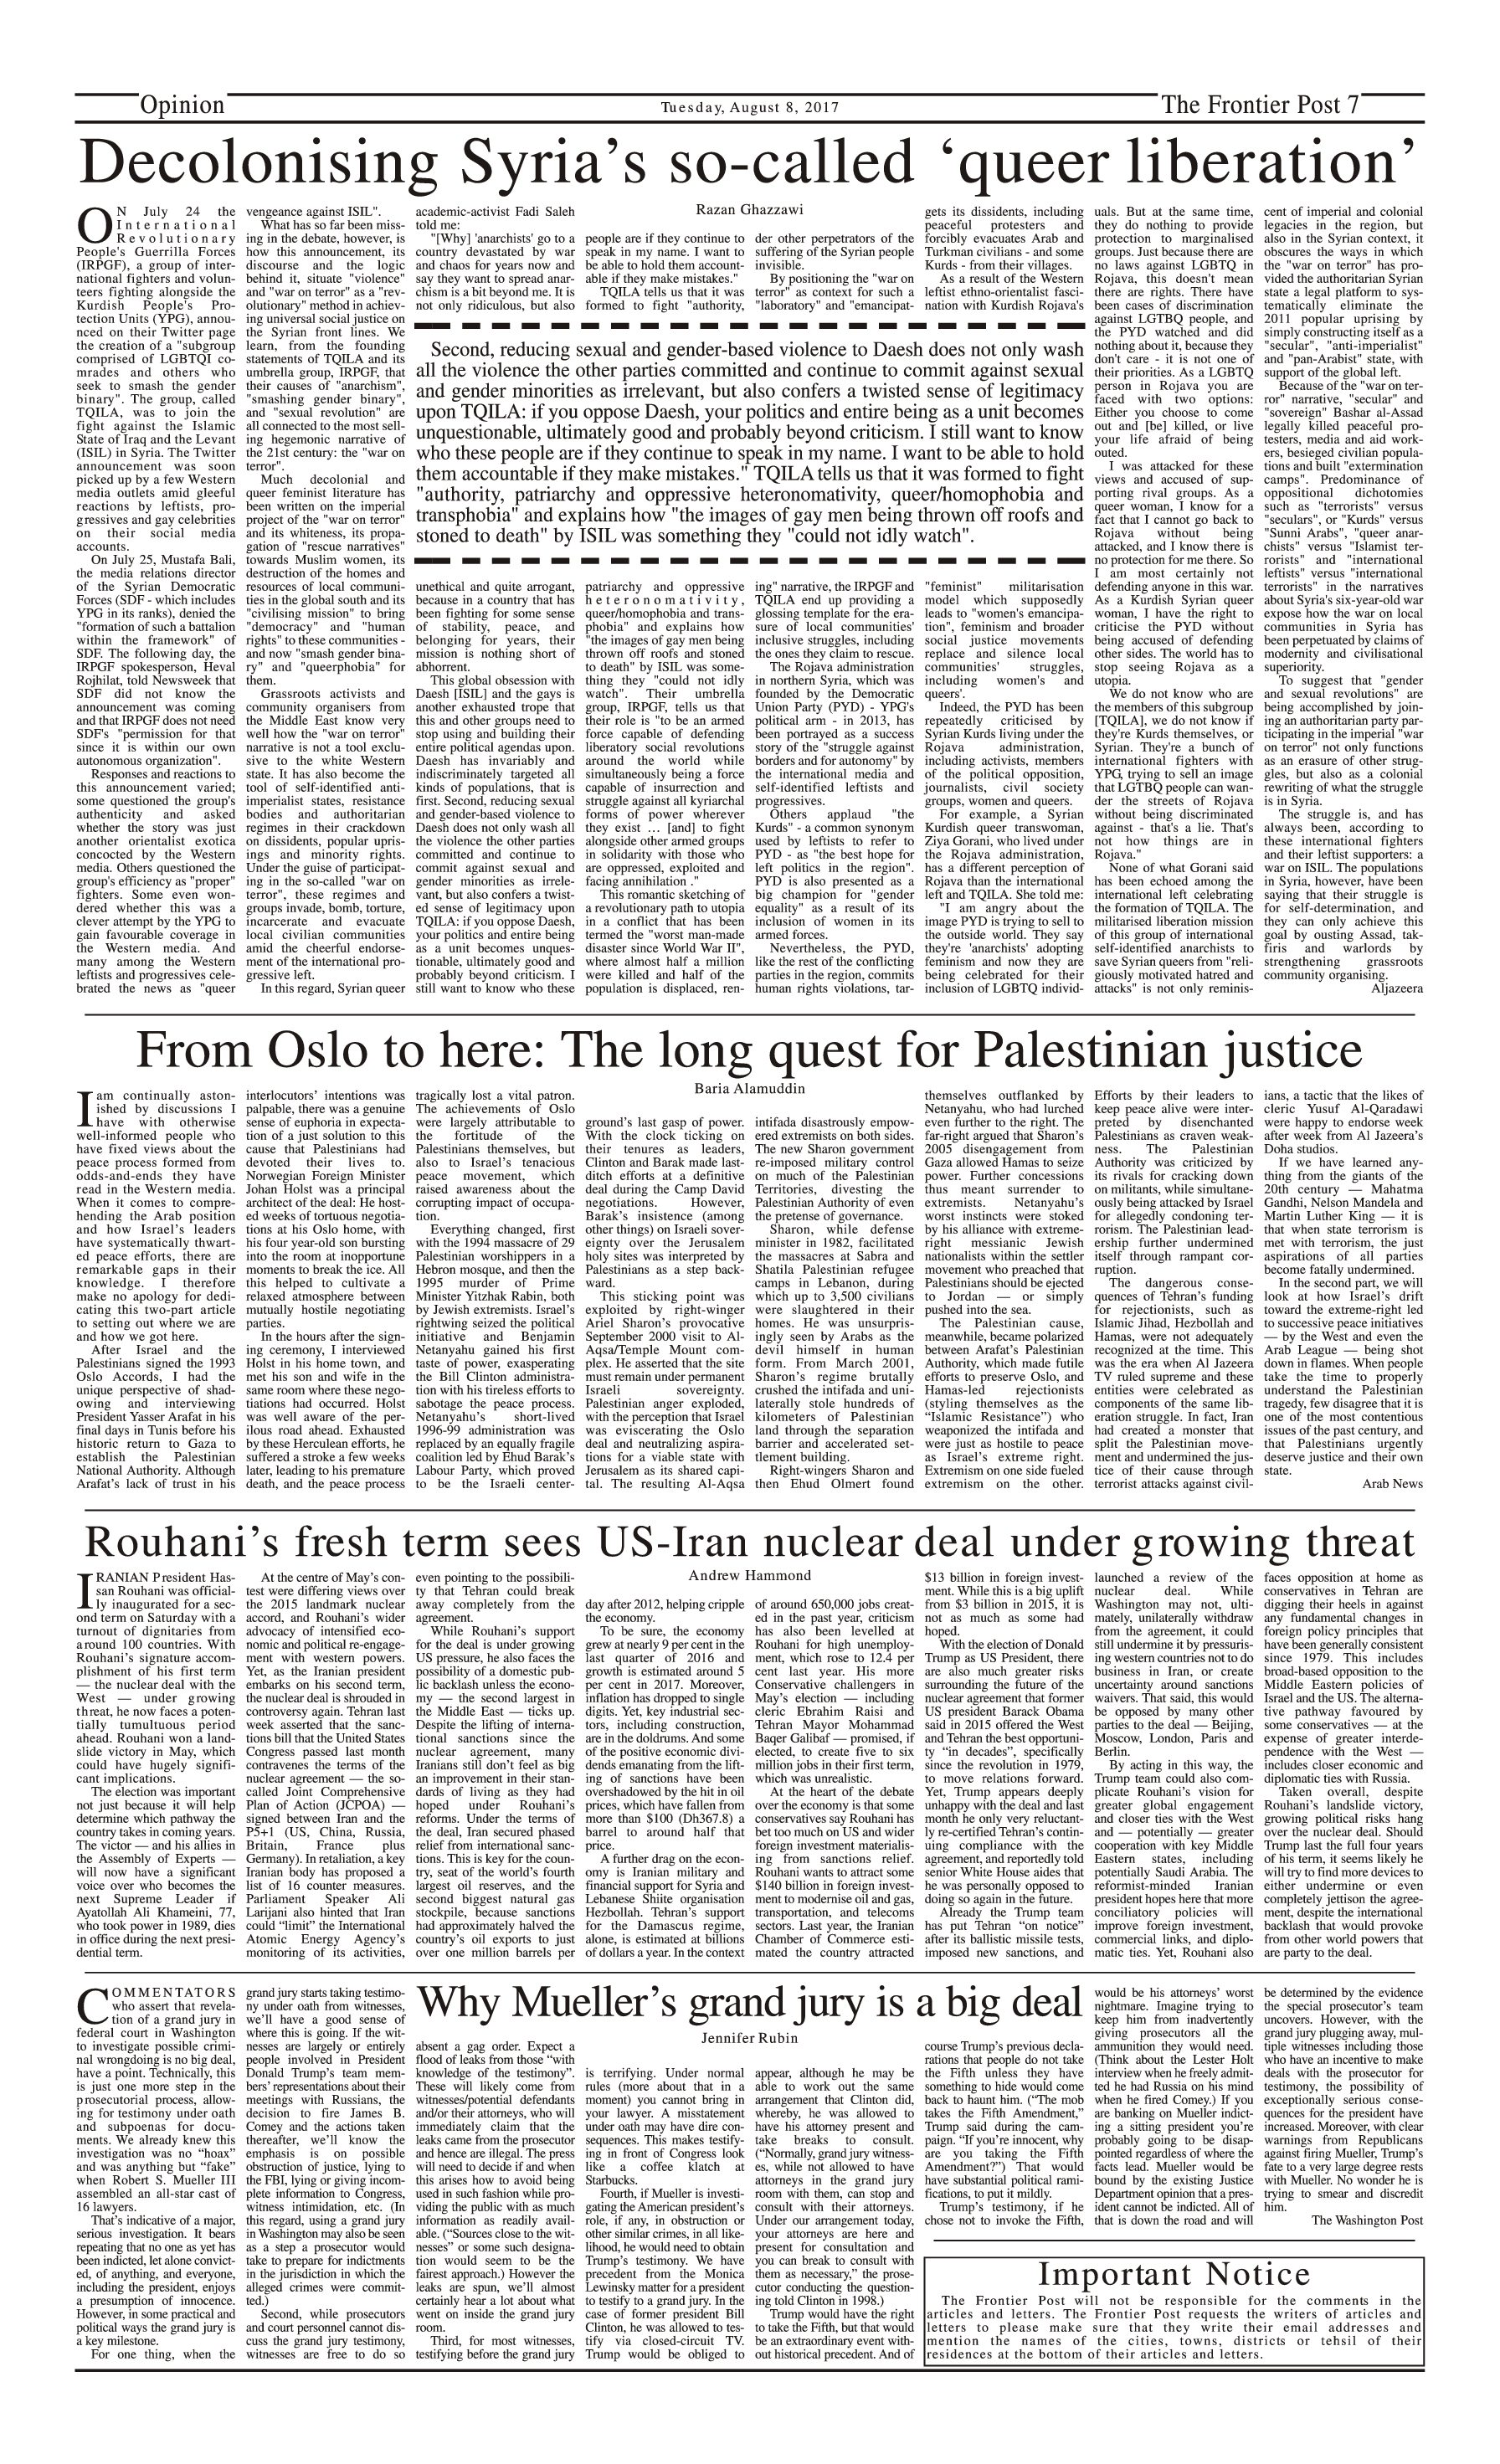 Opinion Page 08